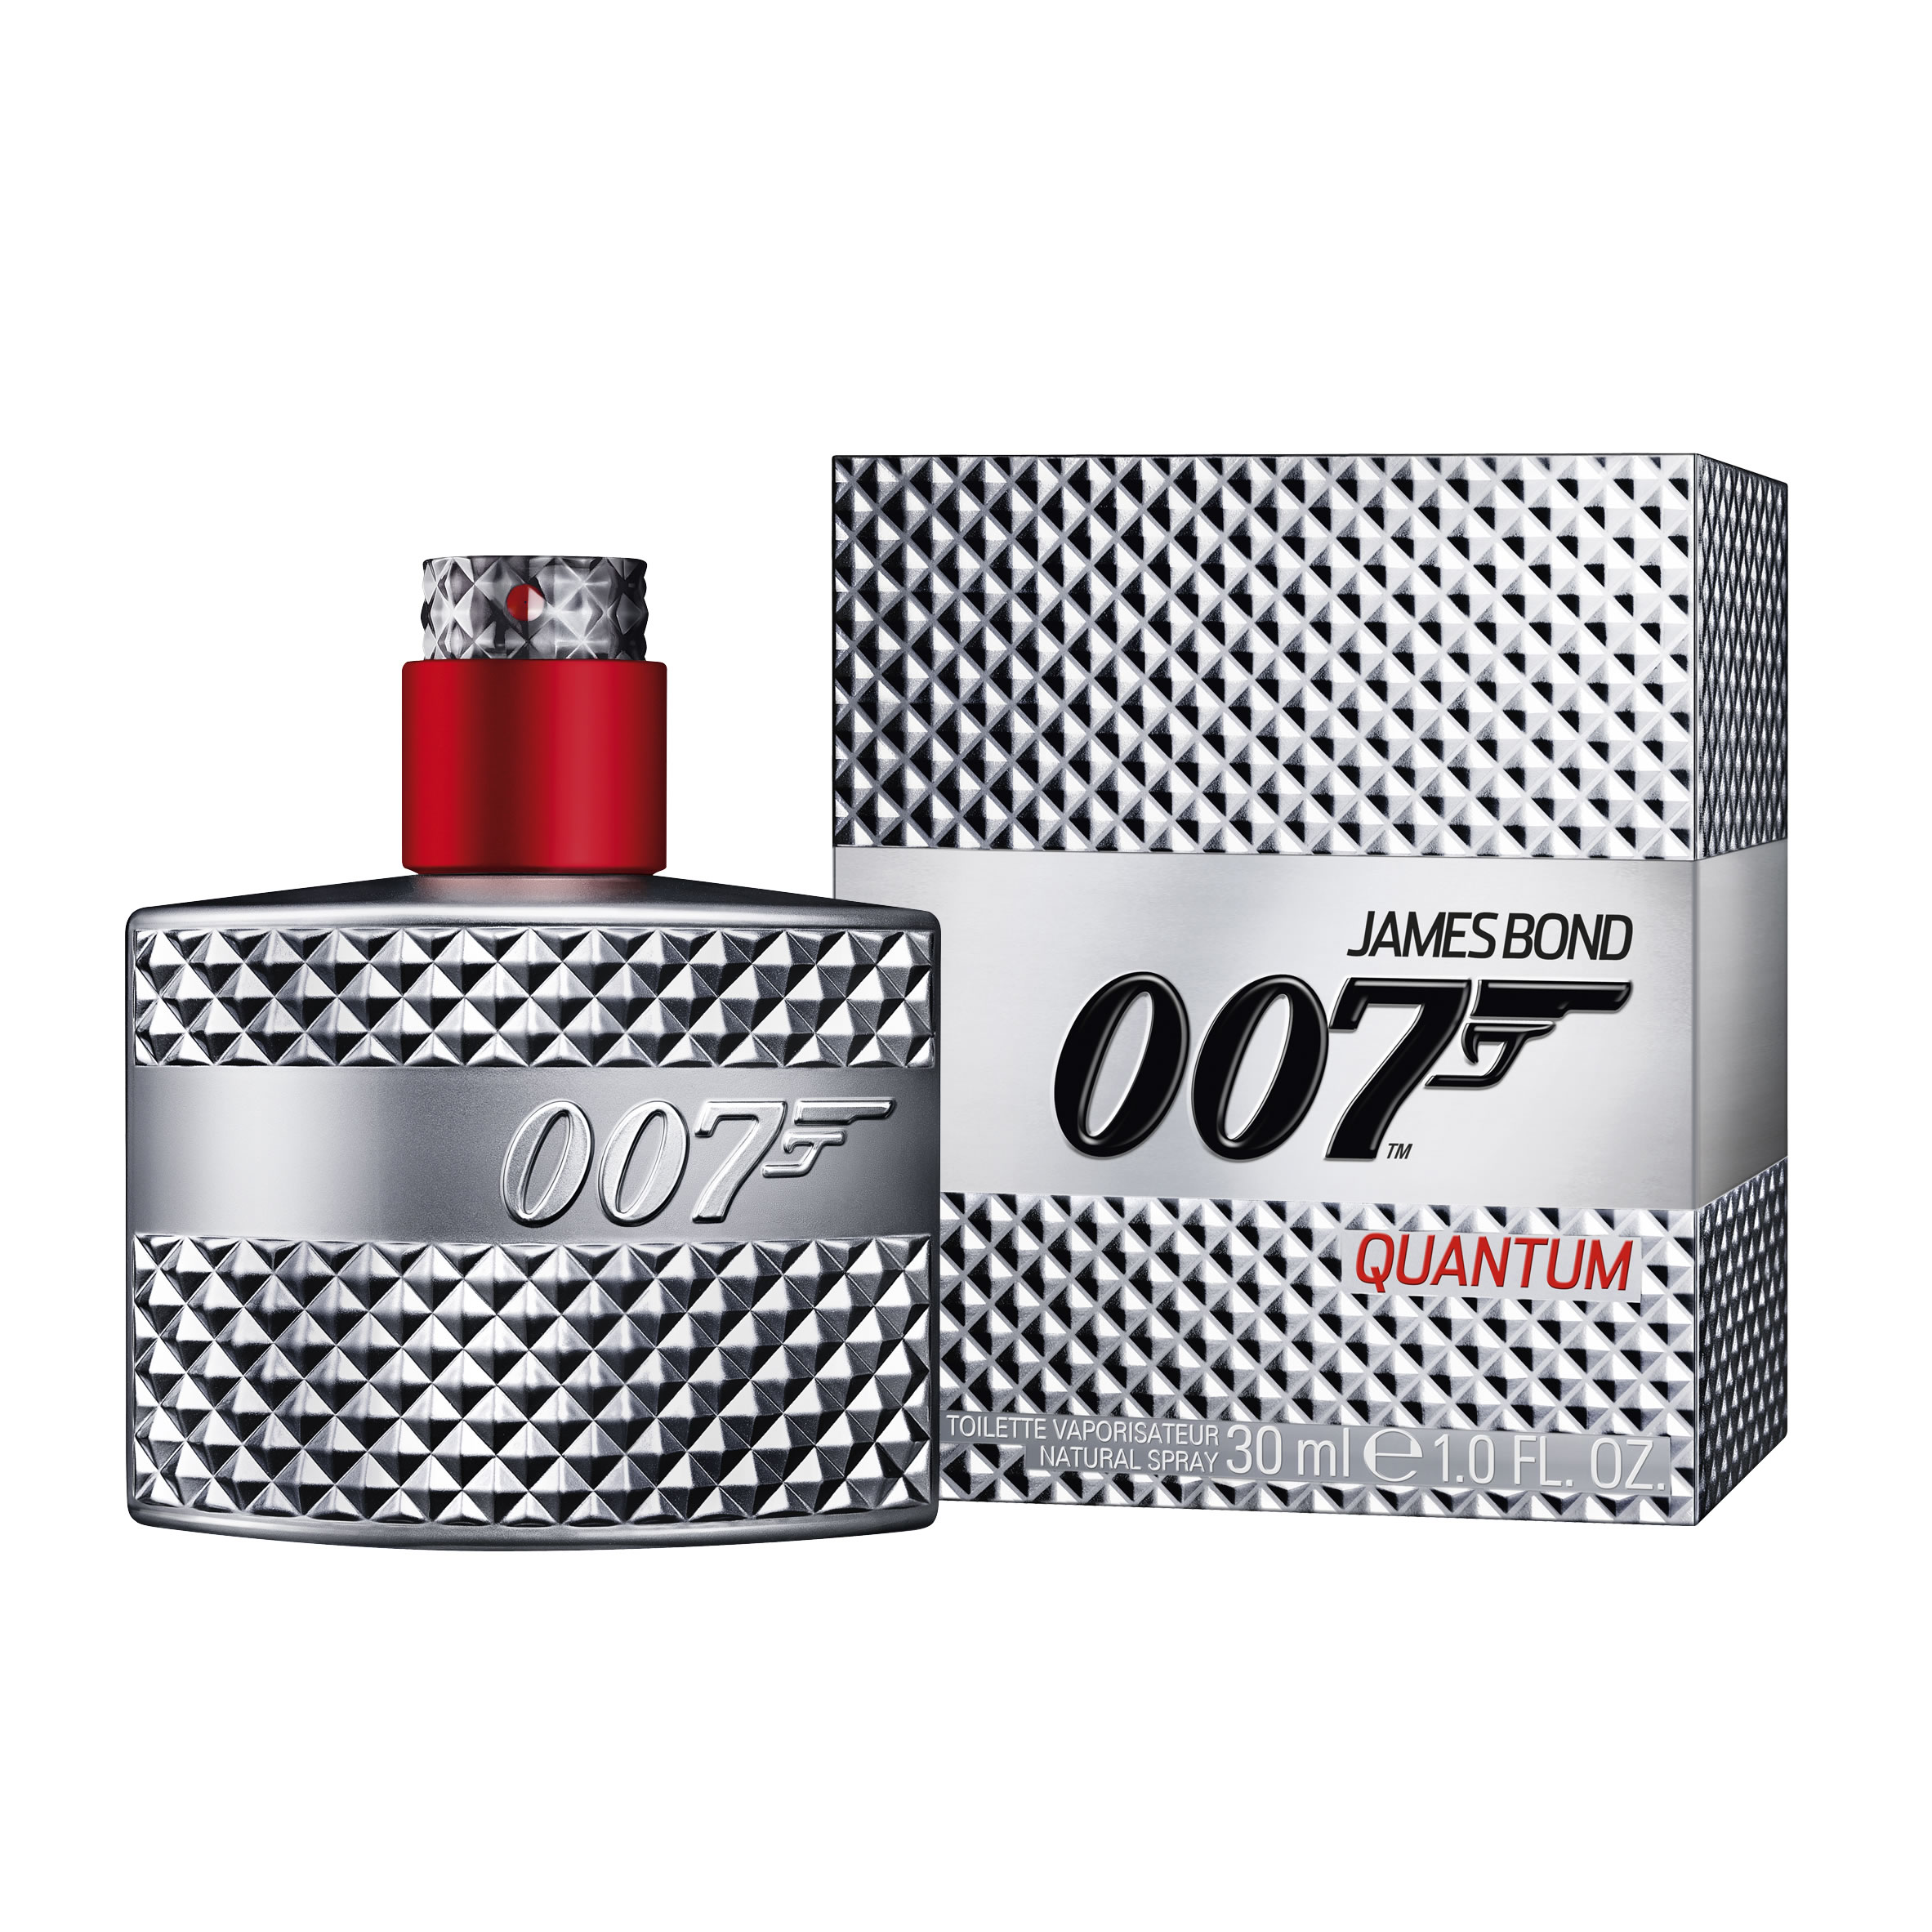 James bond parfym quantum